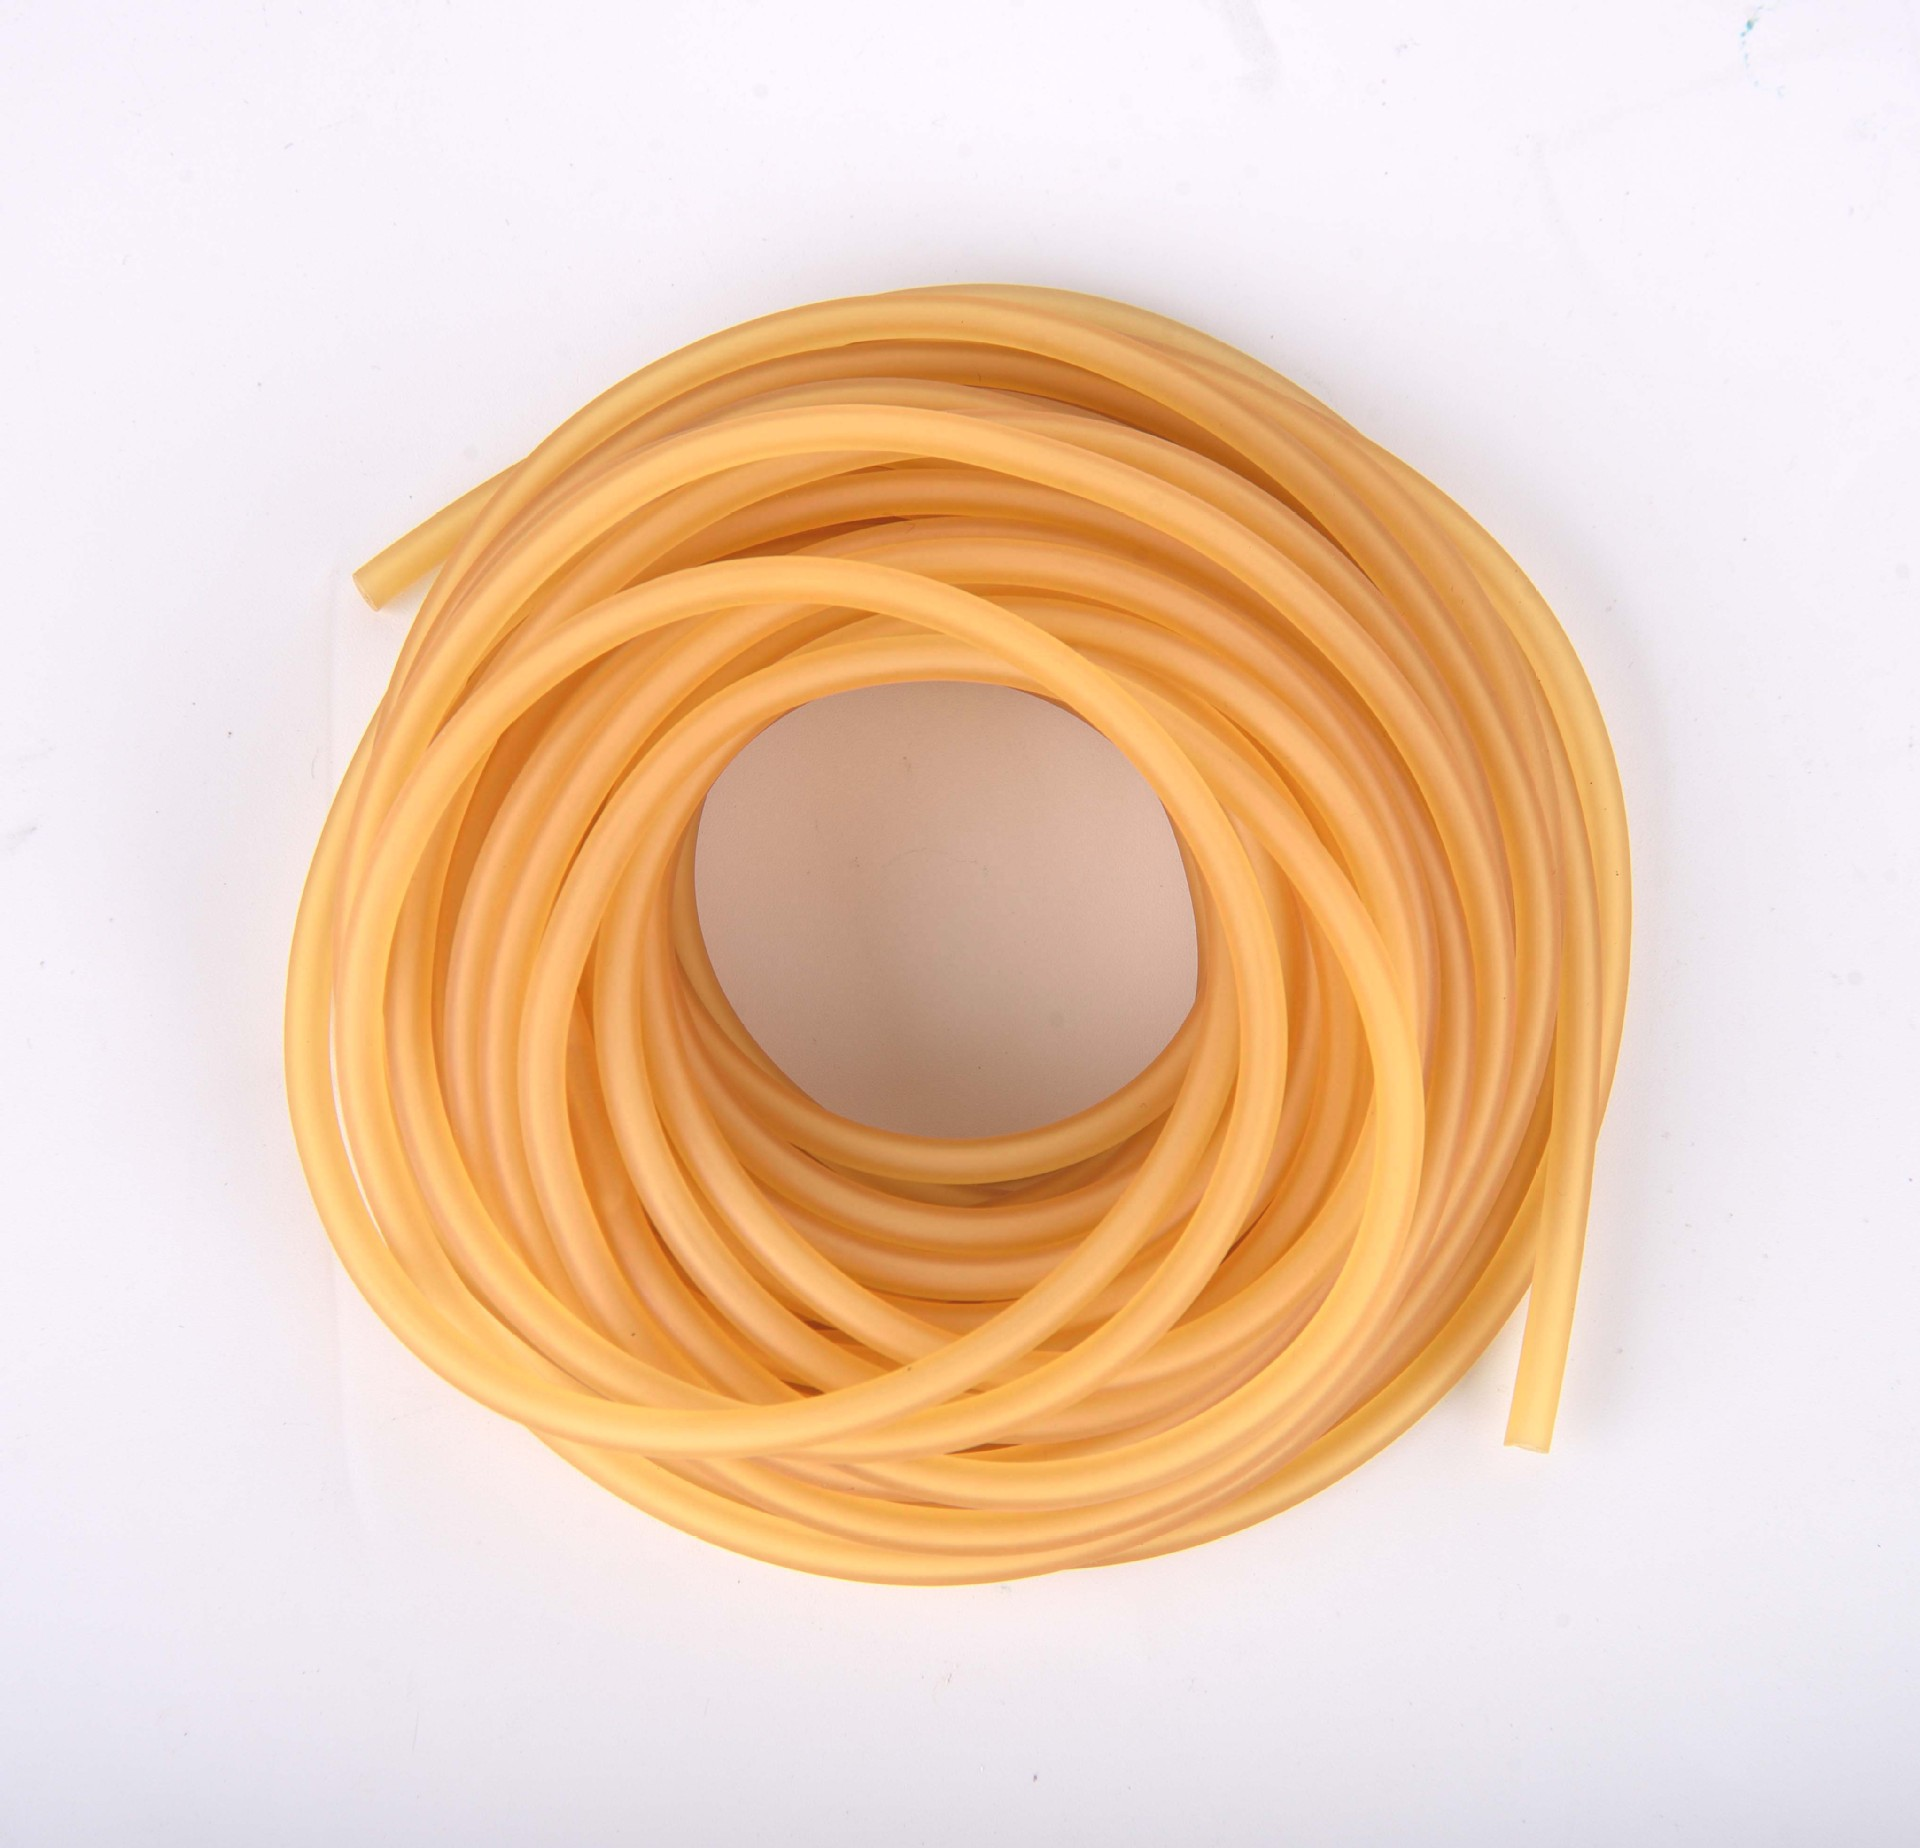 Nature Latex Rubber Hoses 2 3 4 5 6 7 9 10 12 14 17 Mm ID X OD High Resilient Elastic Surgical Medical Tube Slingshot Catapult